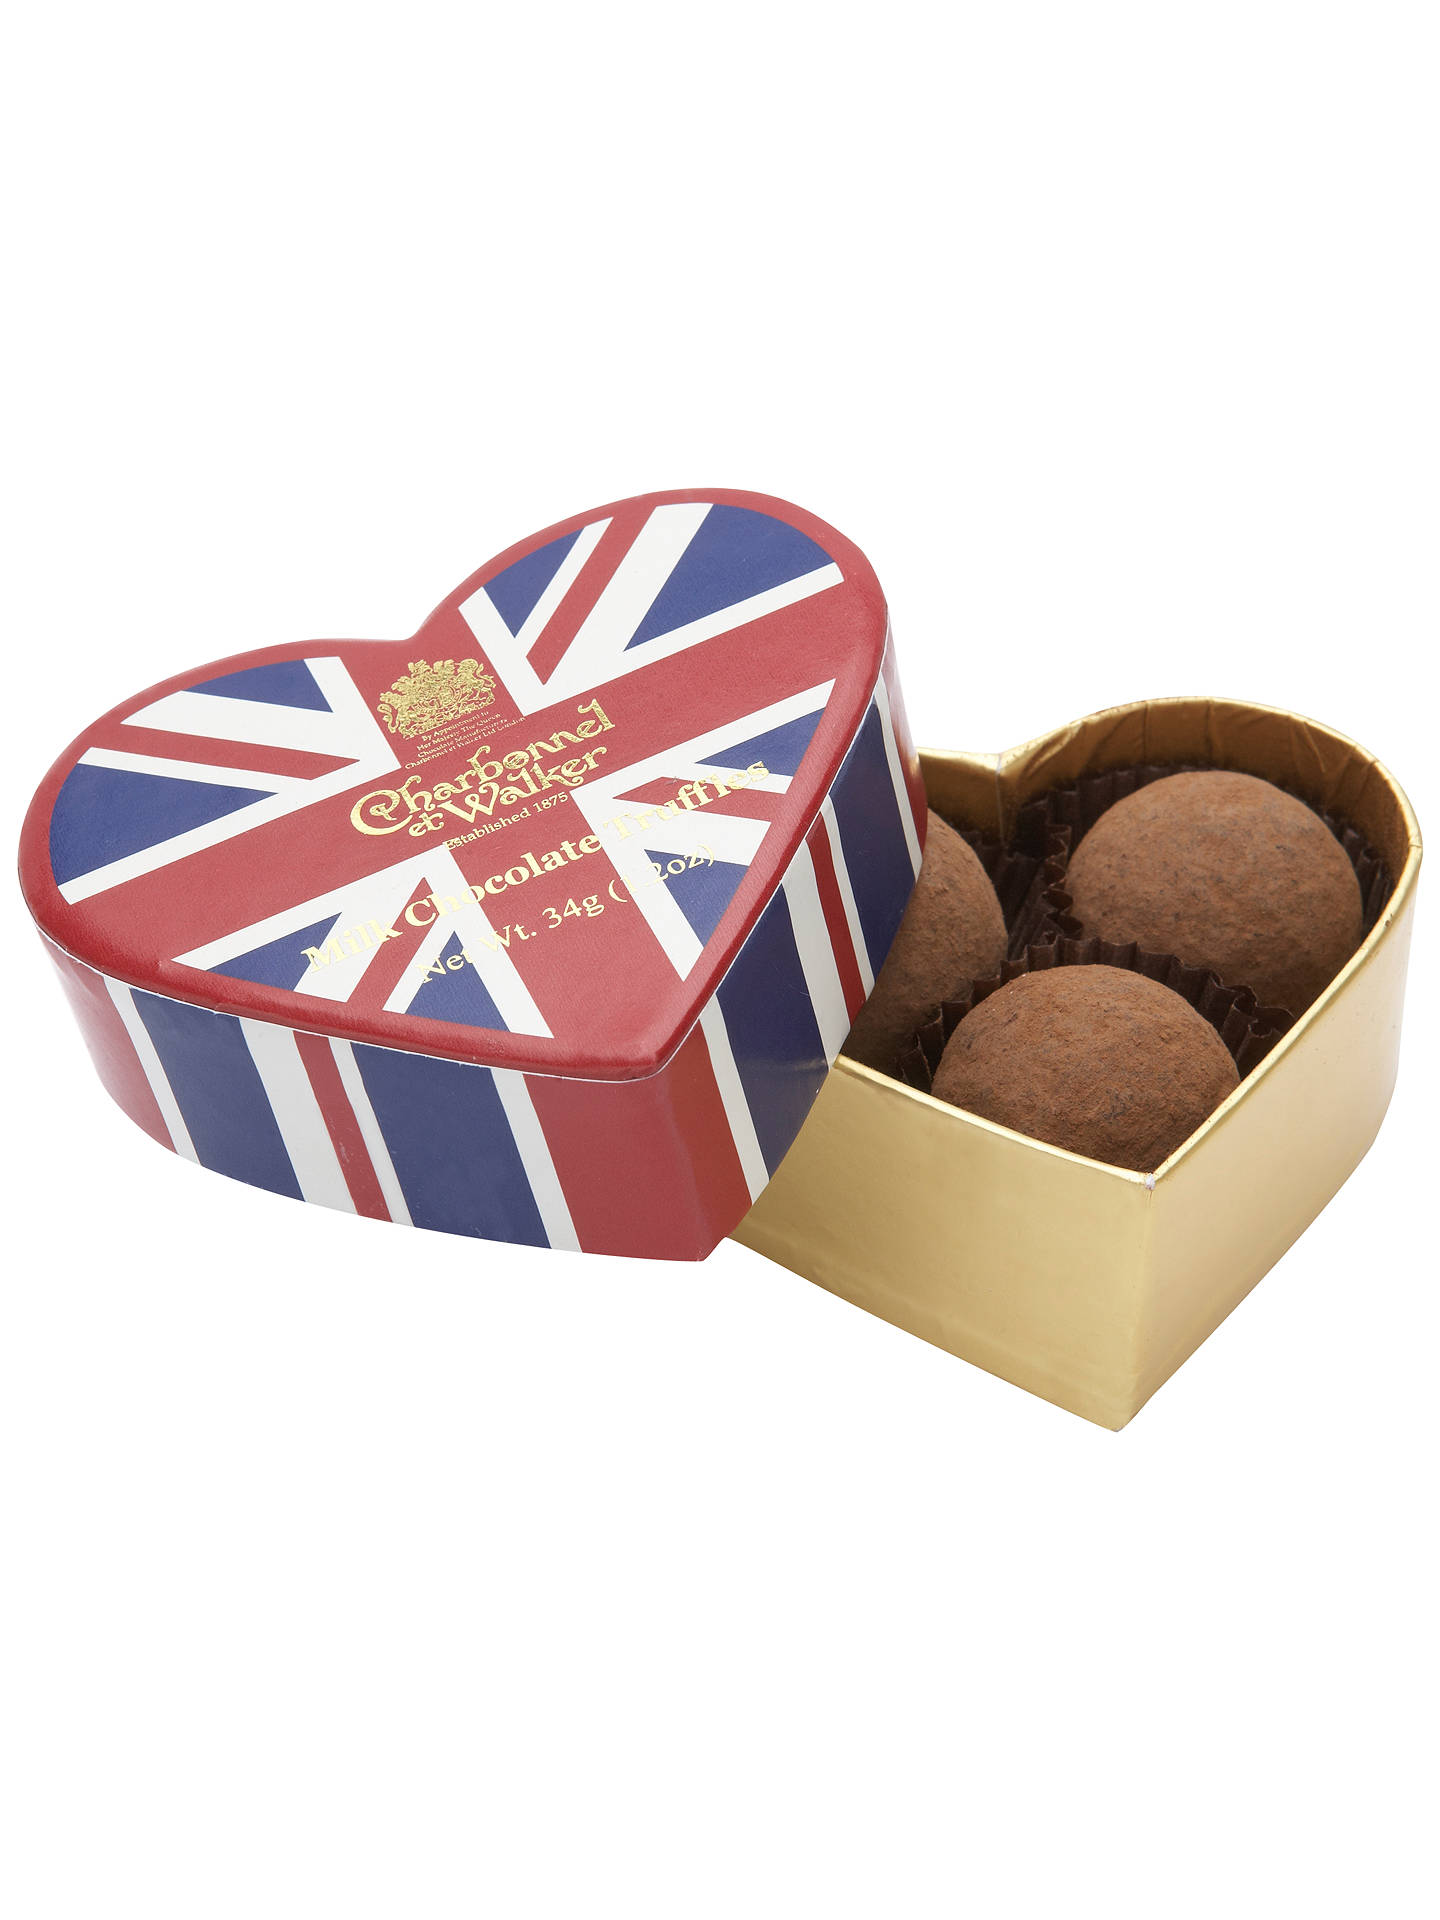 Buy Charbonnel et Walker Mini Truffles in a Union Jack Heart Box, 34g Online at johnlewis.com